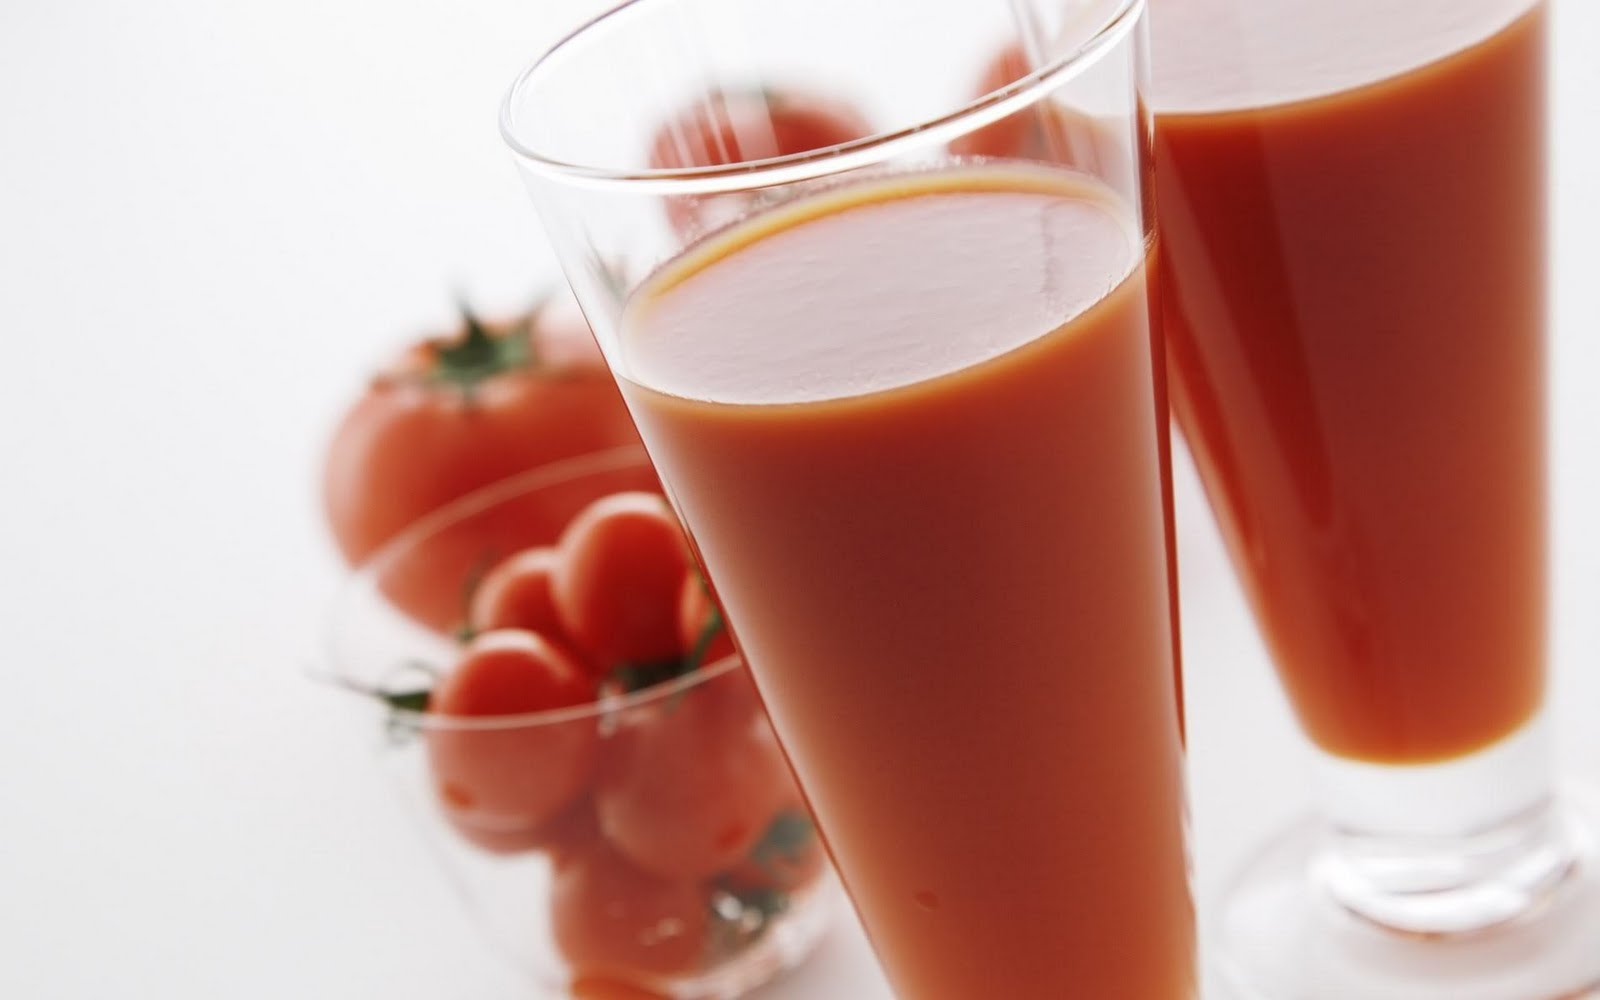 Tomato juice is one of the popular juices. Homemade tomato juice is ...